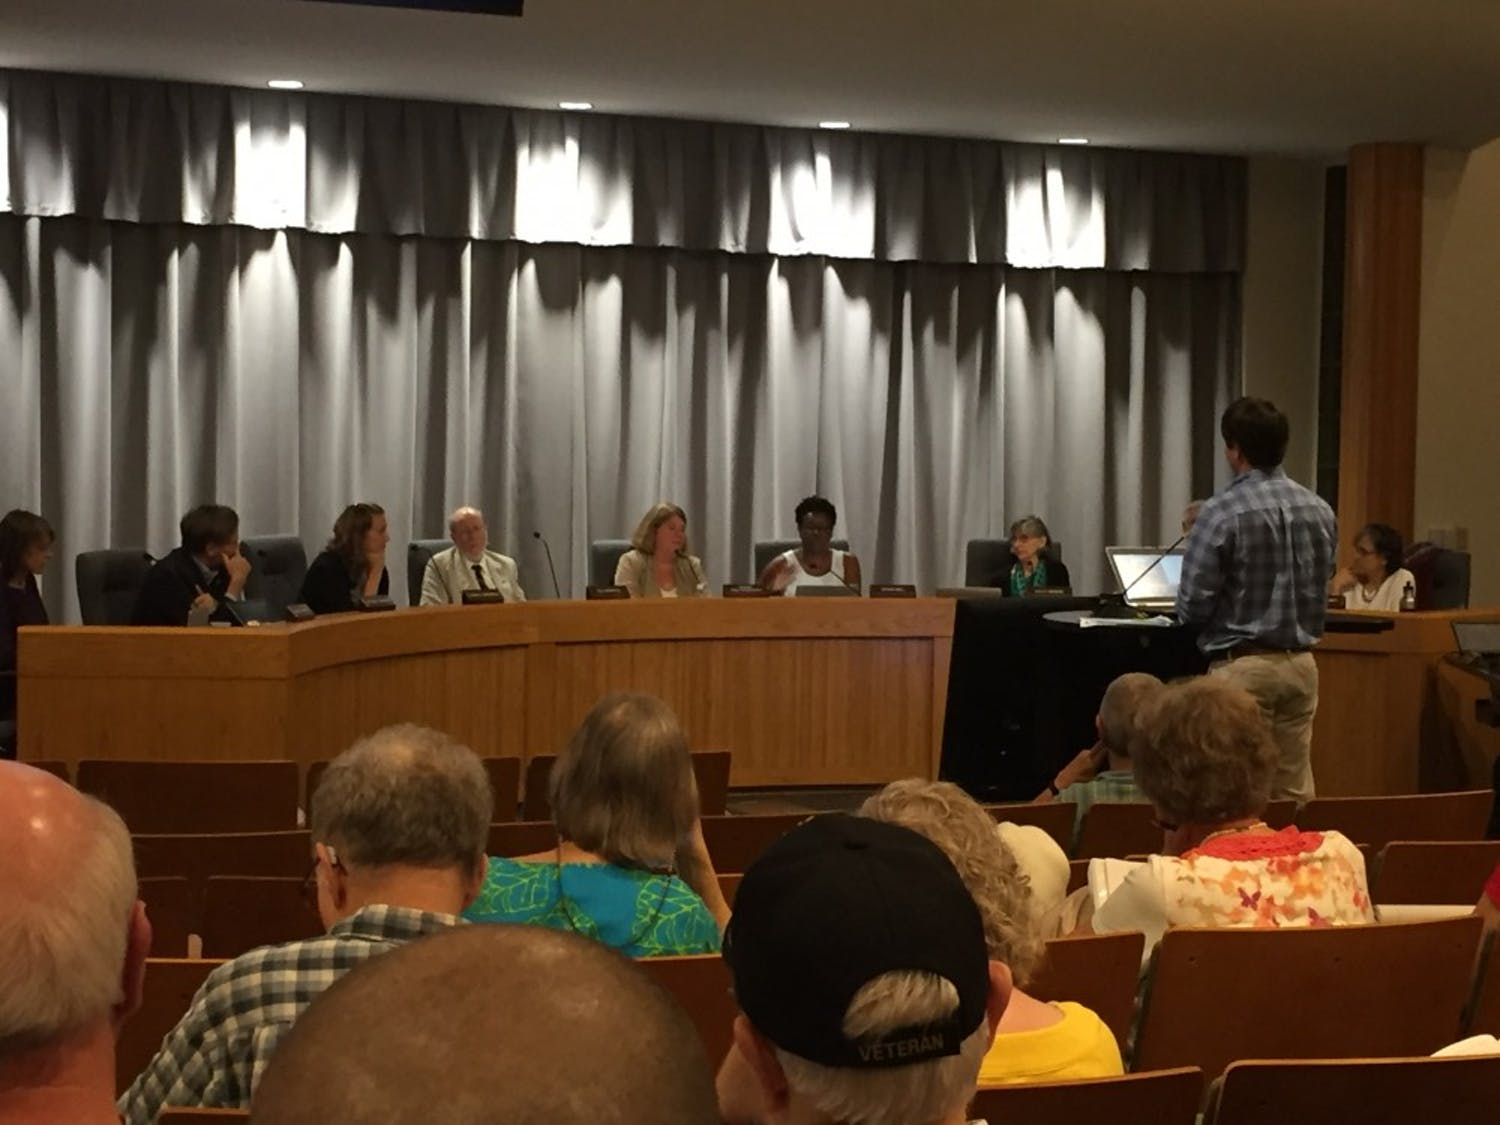 The Chapel Hill Town Council discussed parking and development at its meeting on Sept. 19, 2016.